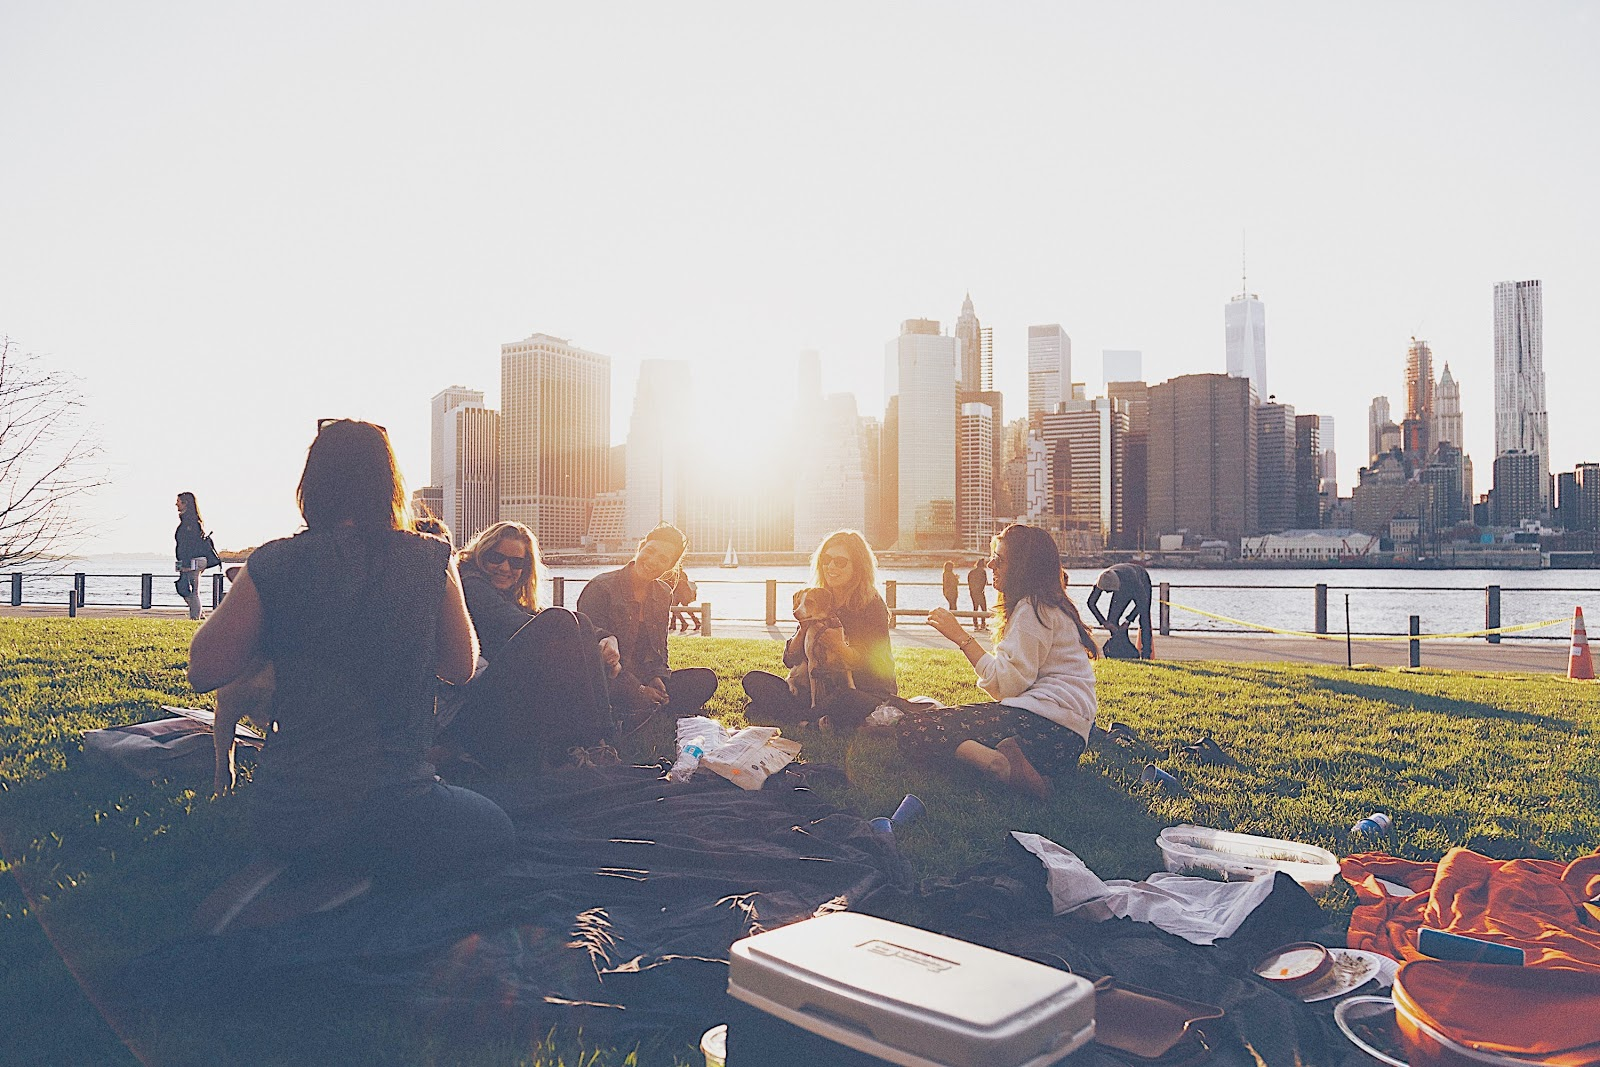 A group of 6 friends share a sunset picnic together in a grassy park across the river from a large city with sunset shining through a skyline filled with tall high rise buildings